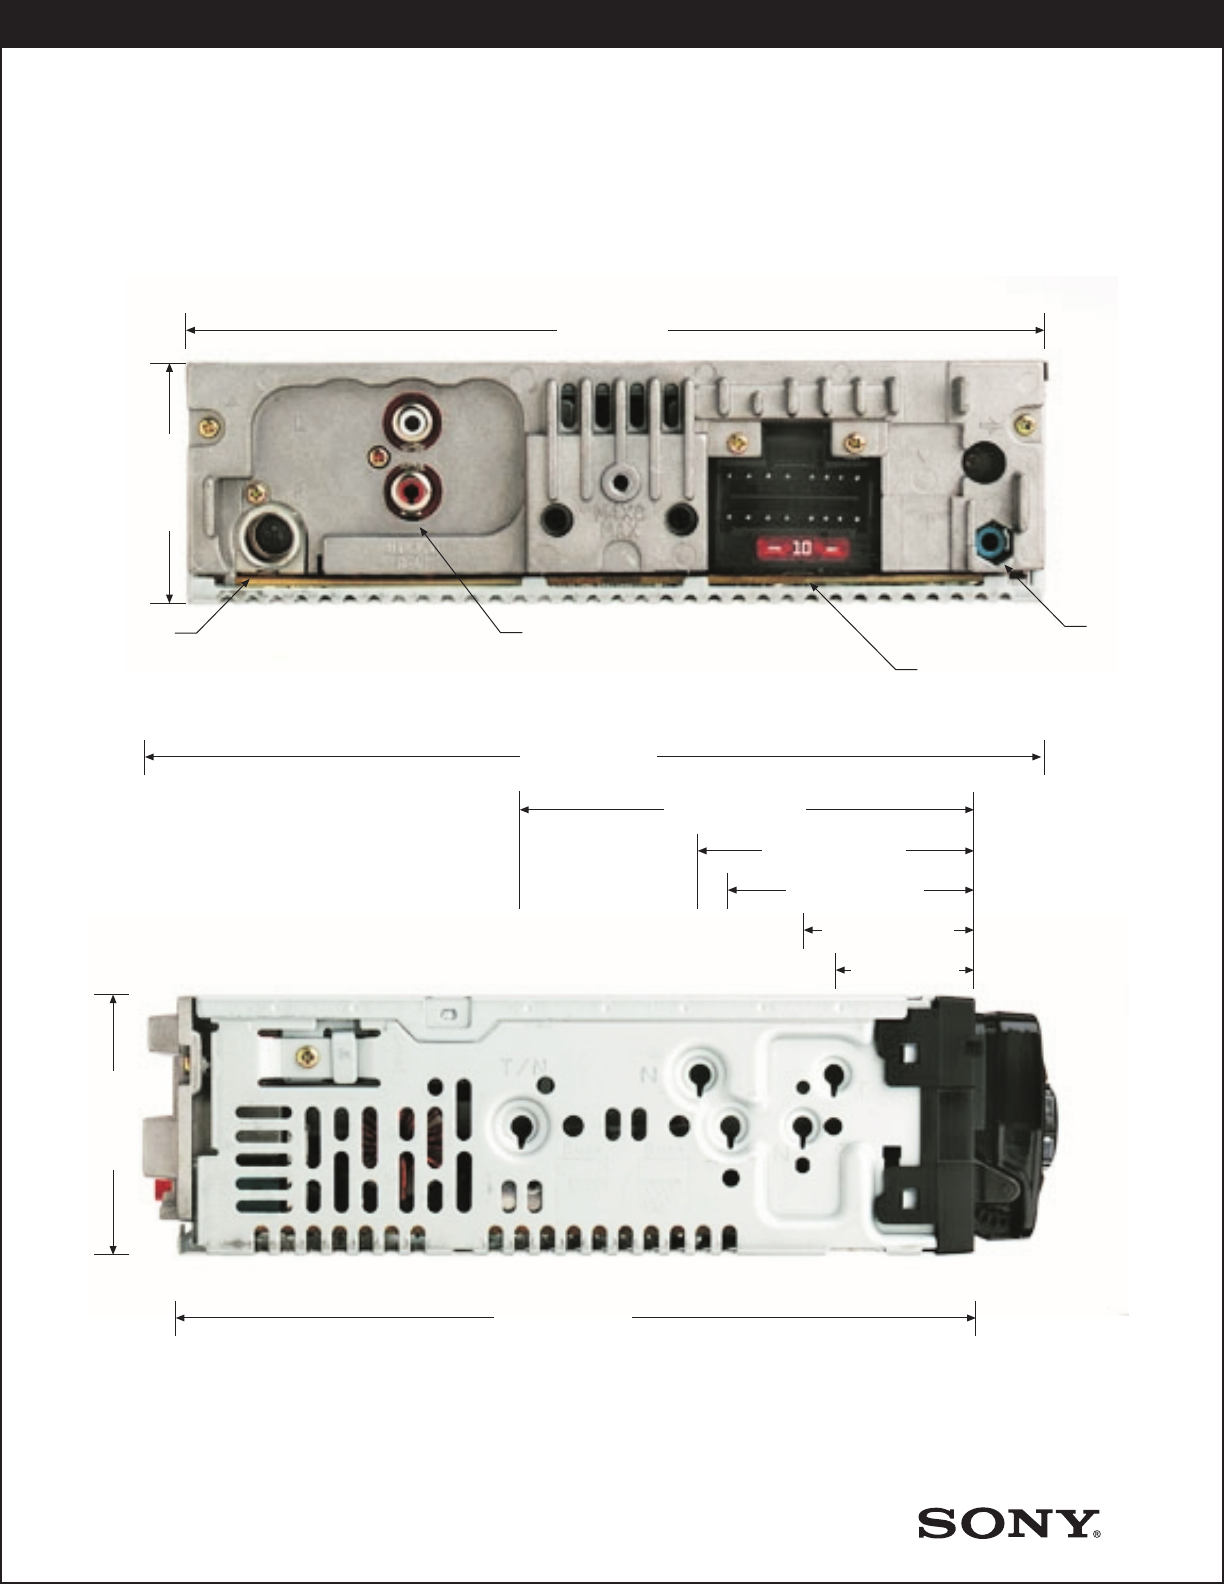 Sony CDX L600X User Manual Product Guide / Specifications Spec SheetUserManual.wiki